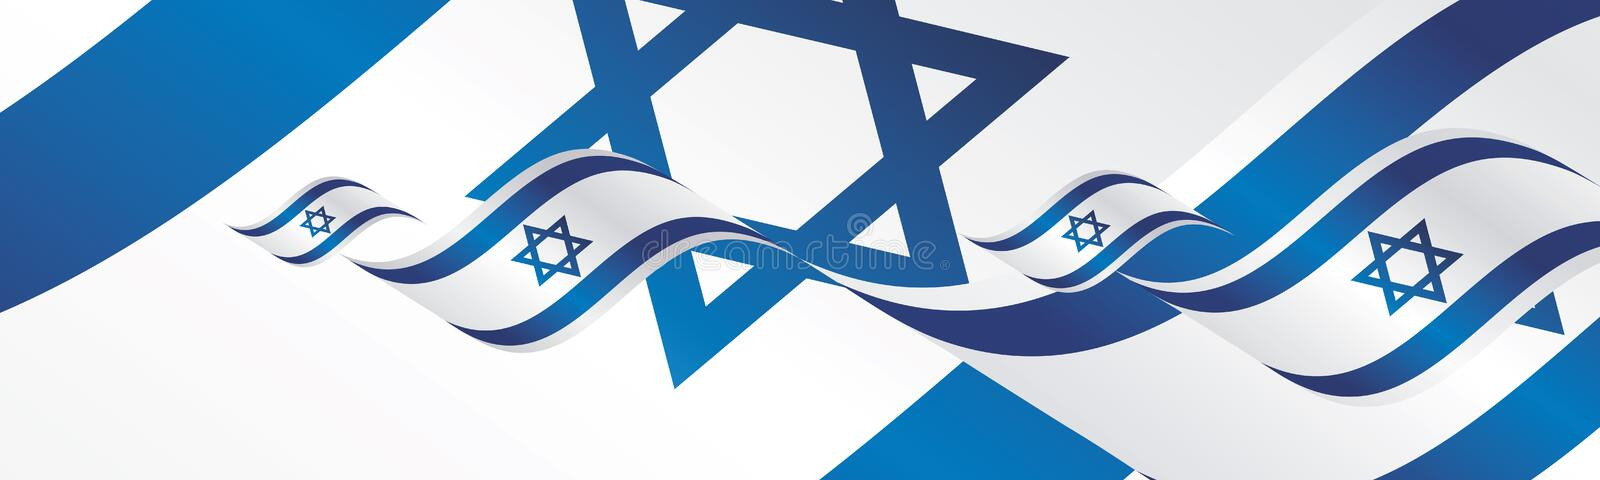 Israel Independence Day waving flags two fold landscape background. Banner greeting card stock illustration